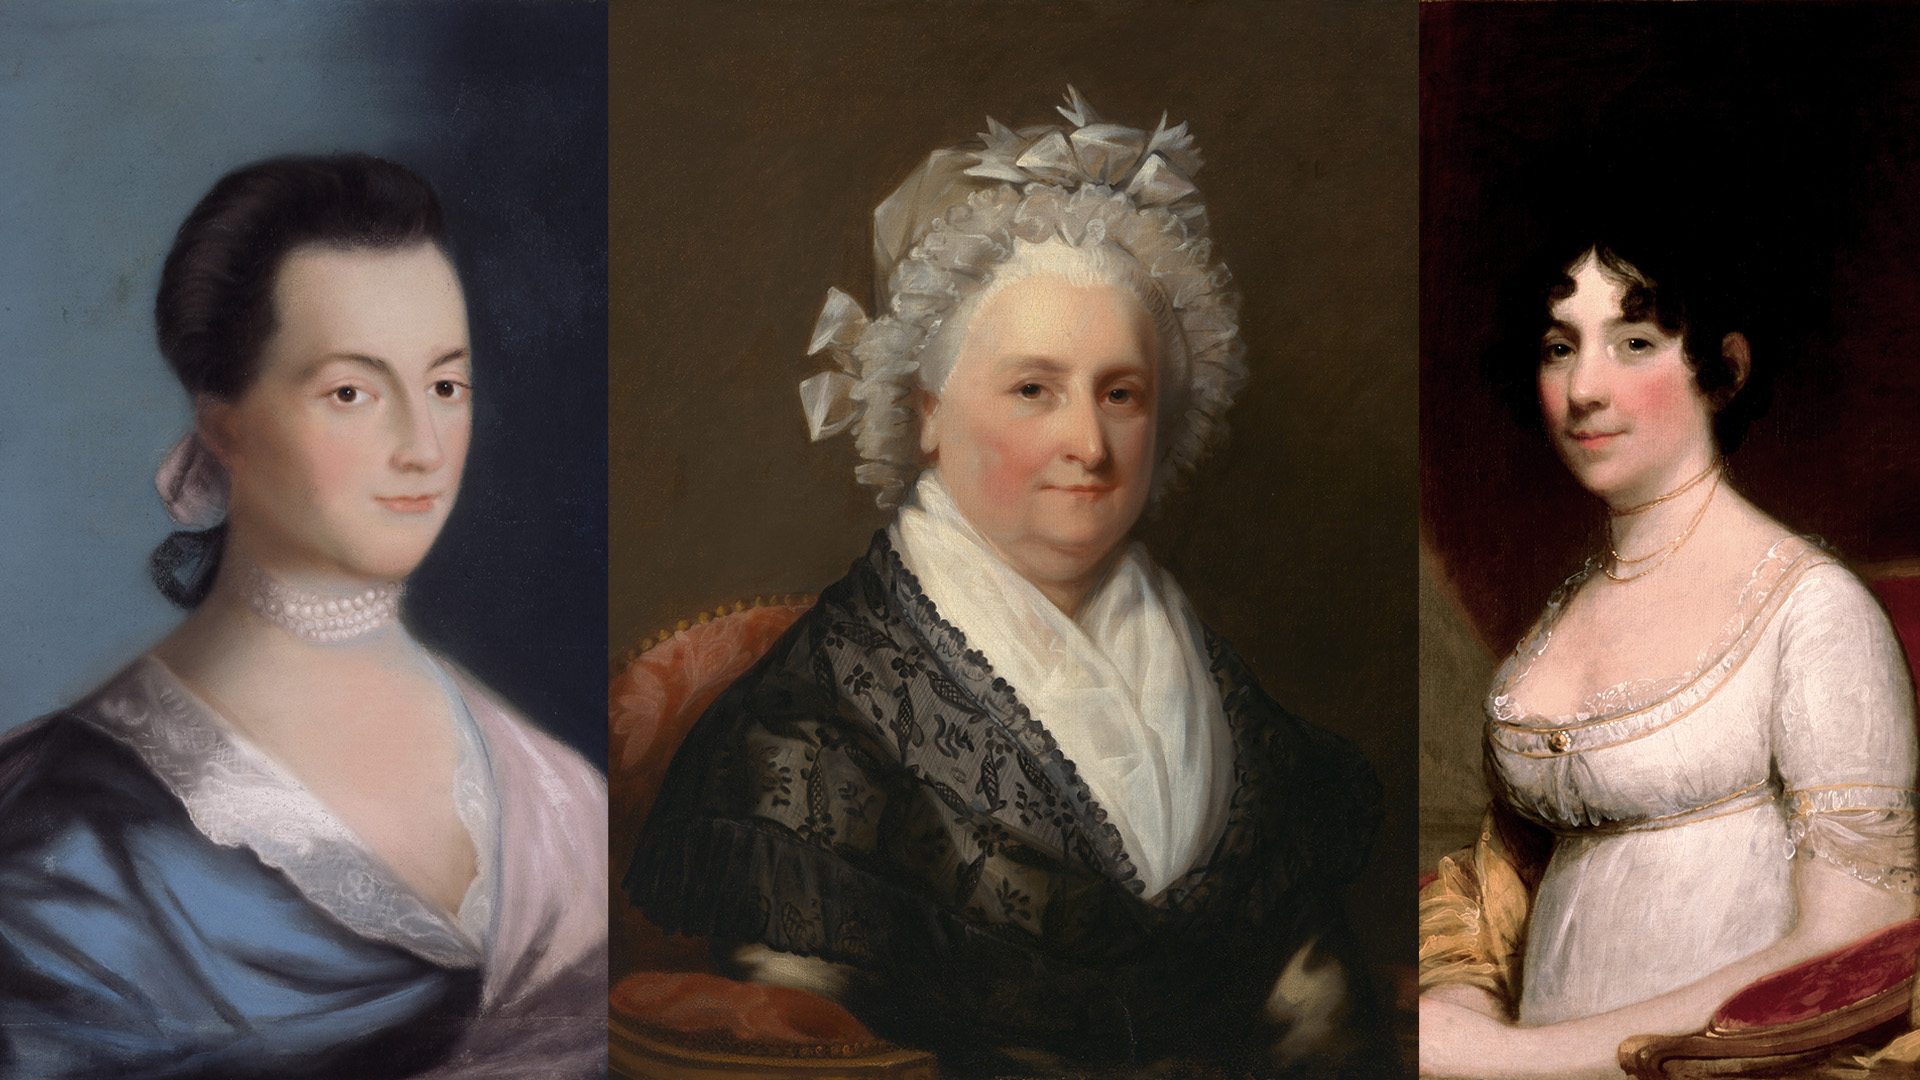 Hear from the First Three First Ladies